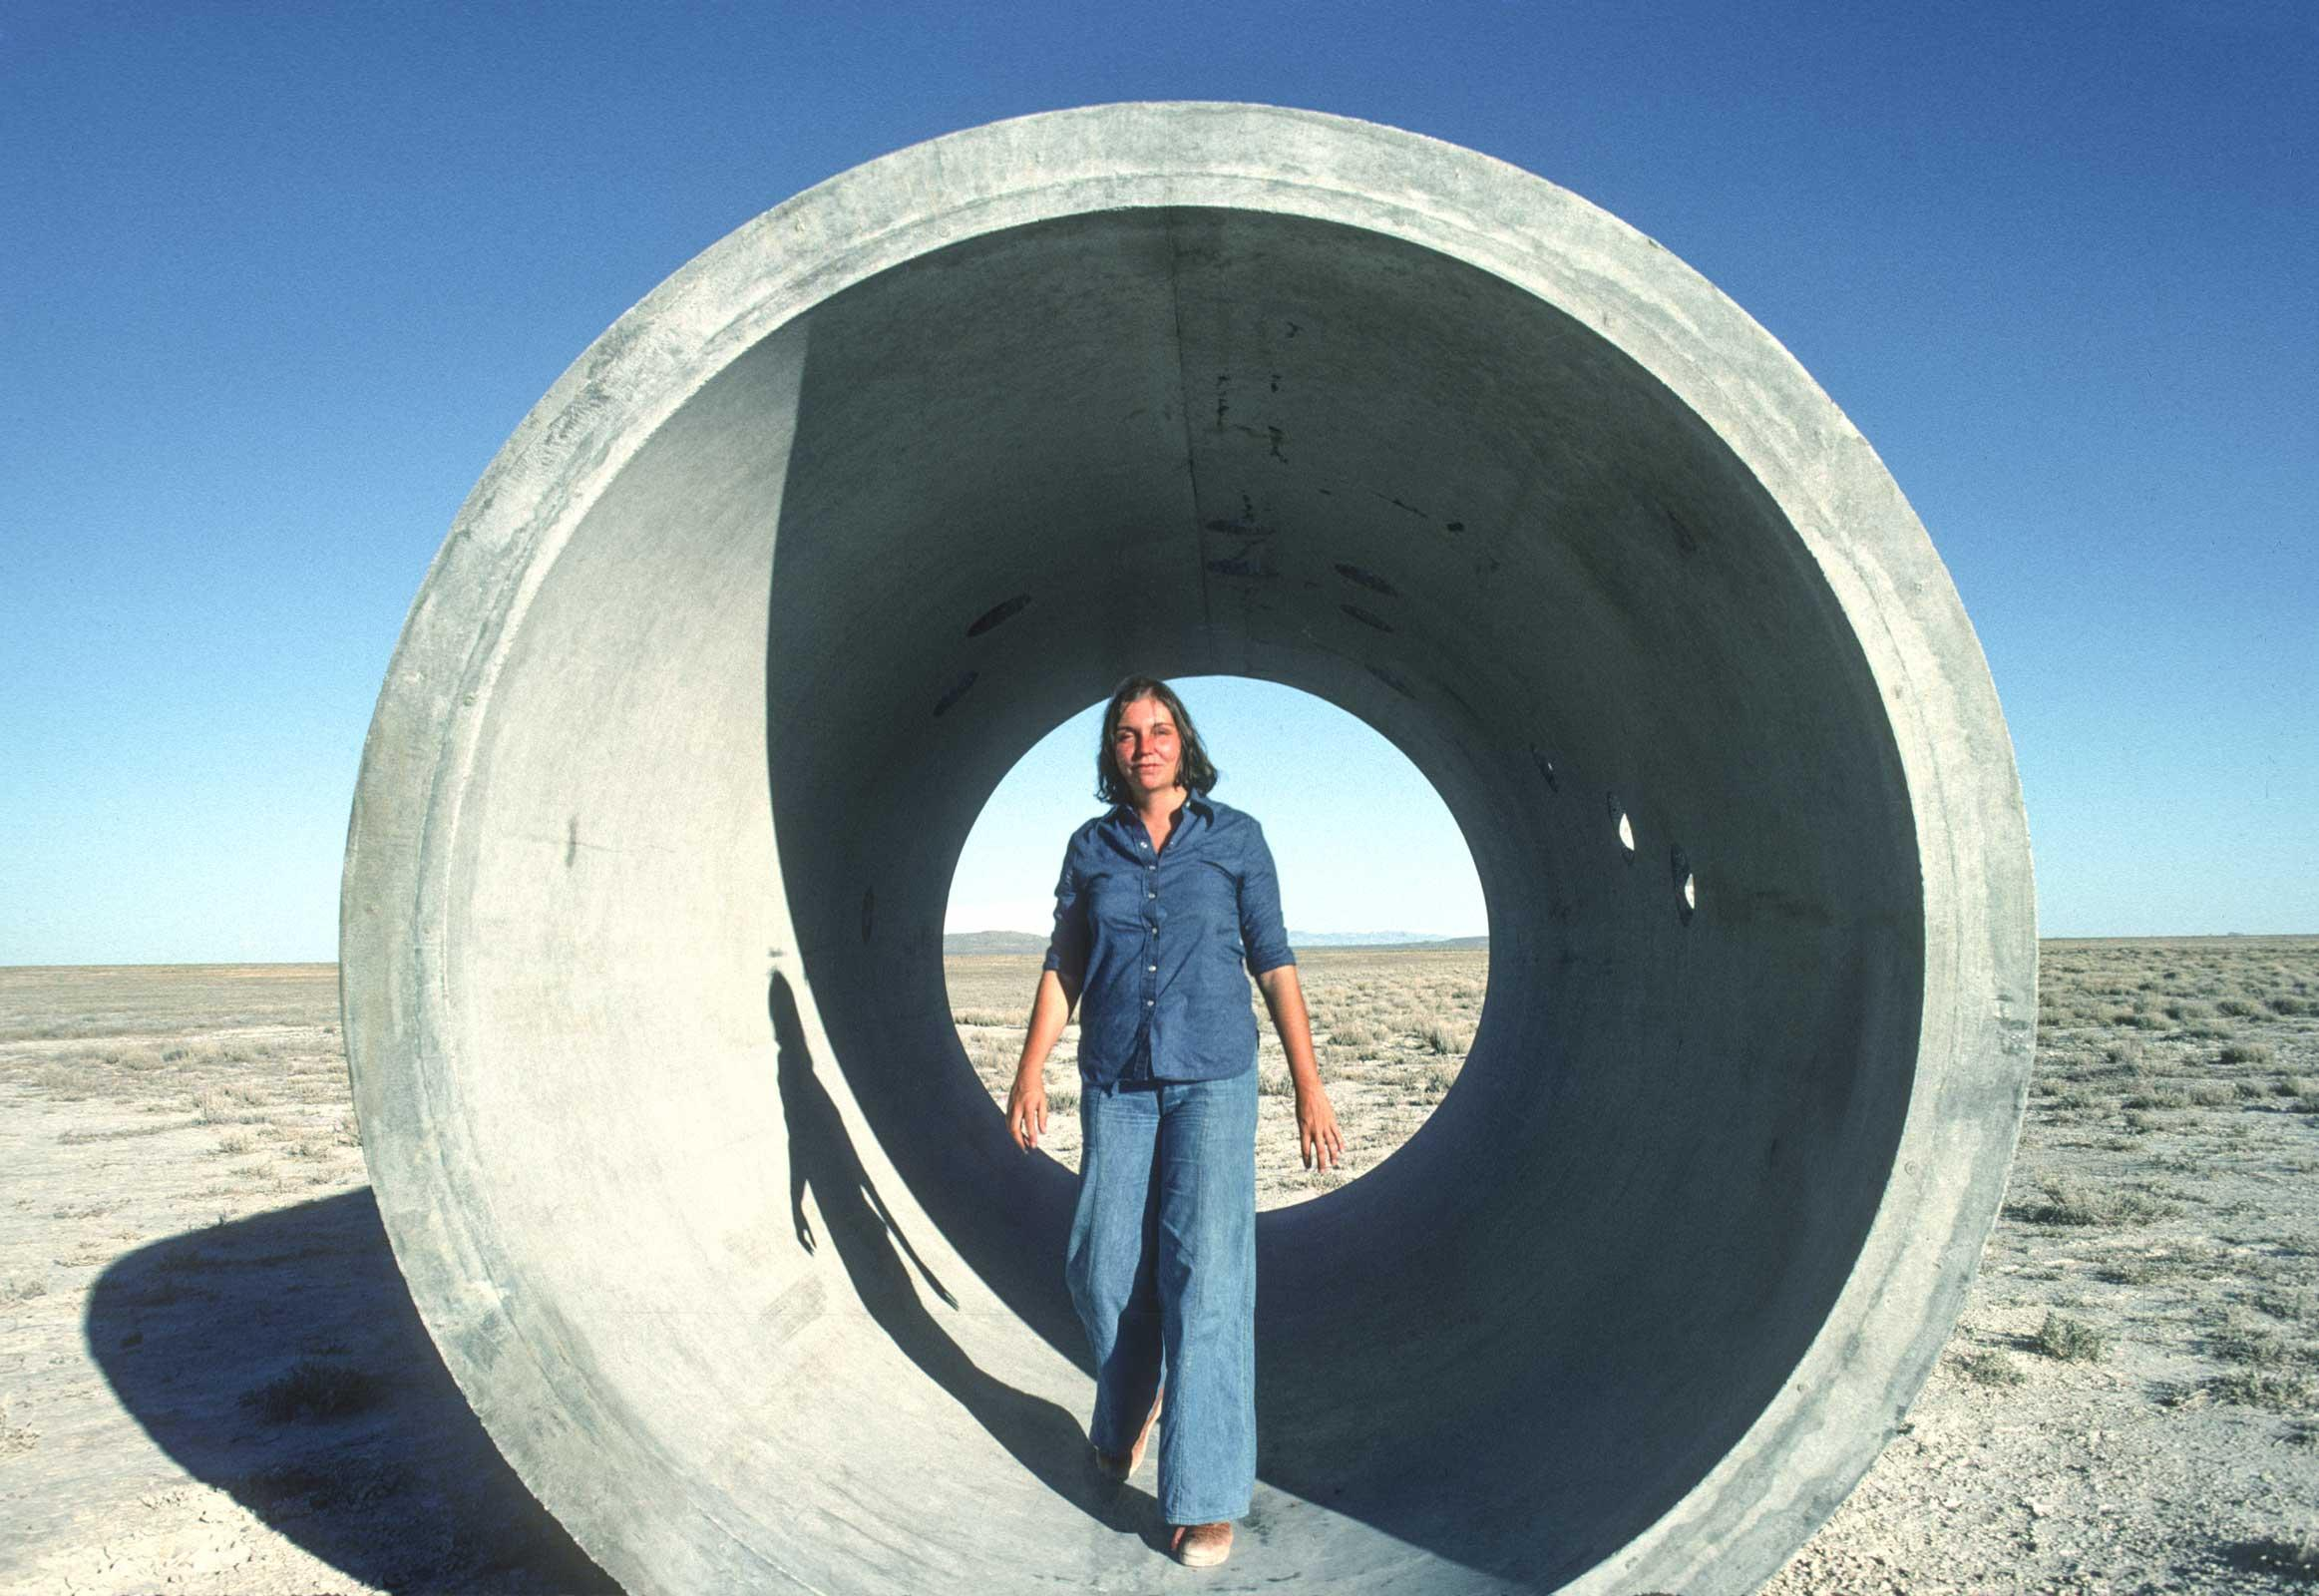 Nancy Holt standing inside one of the large tunnels that are part of Sun Tunnels.  Blue sky and sunny and Nancy is wearing a blue top and blue jeans.